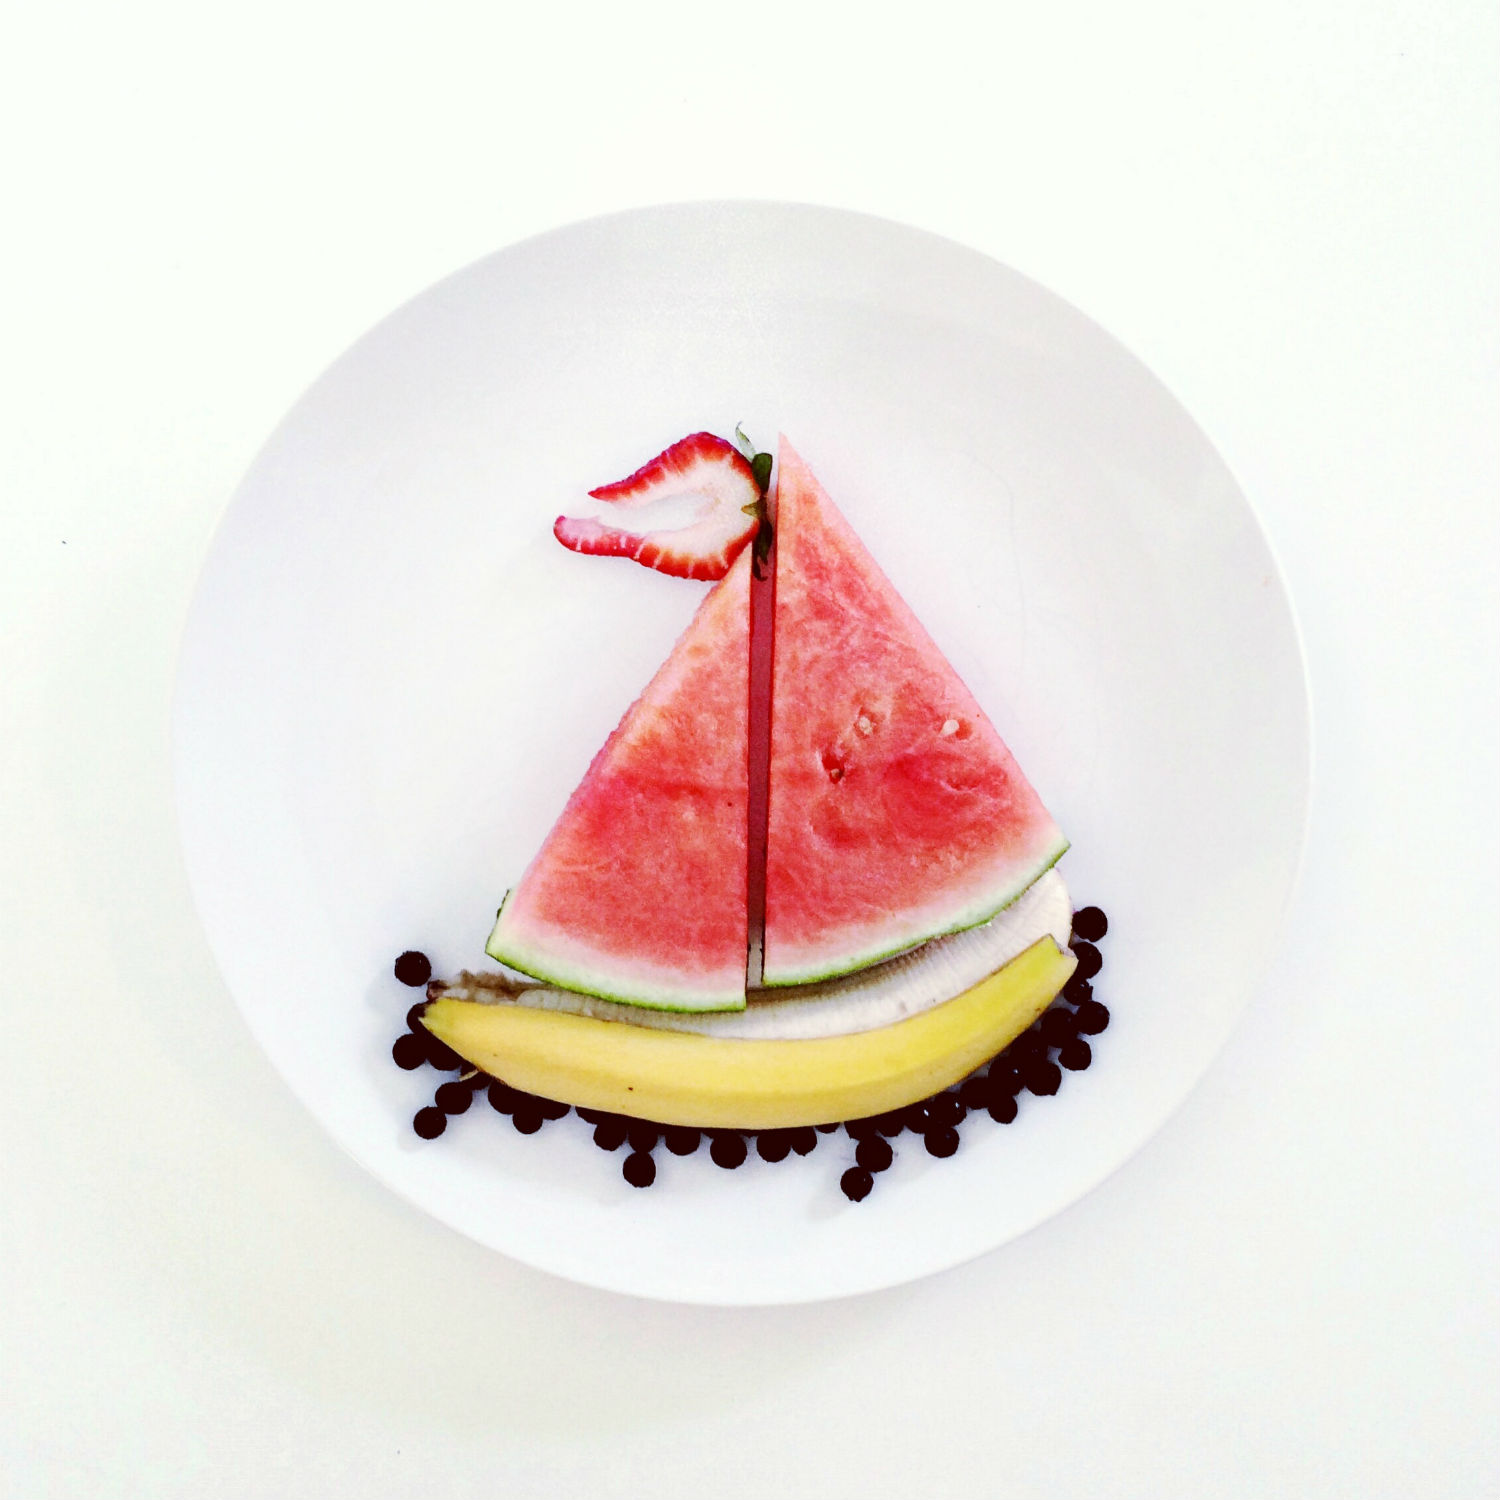 lauren purnell watermelon boat art culinary